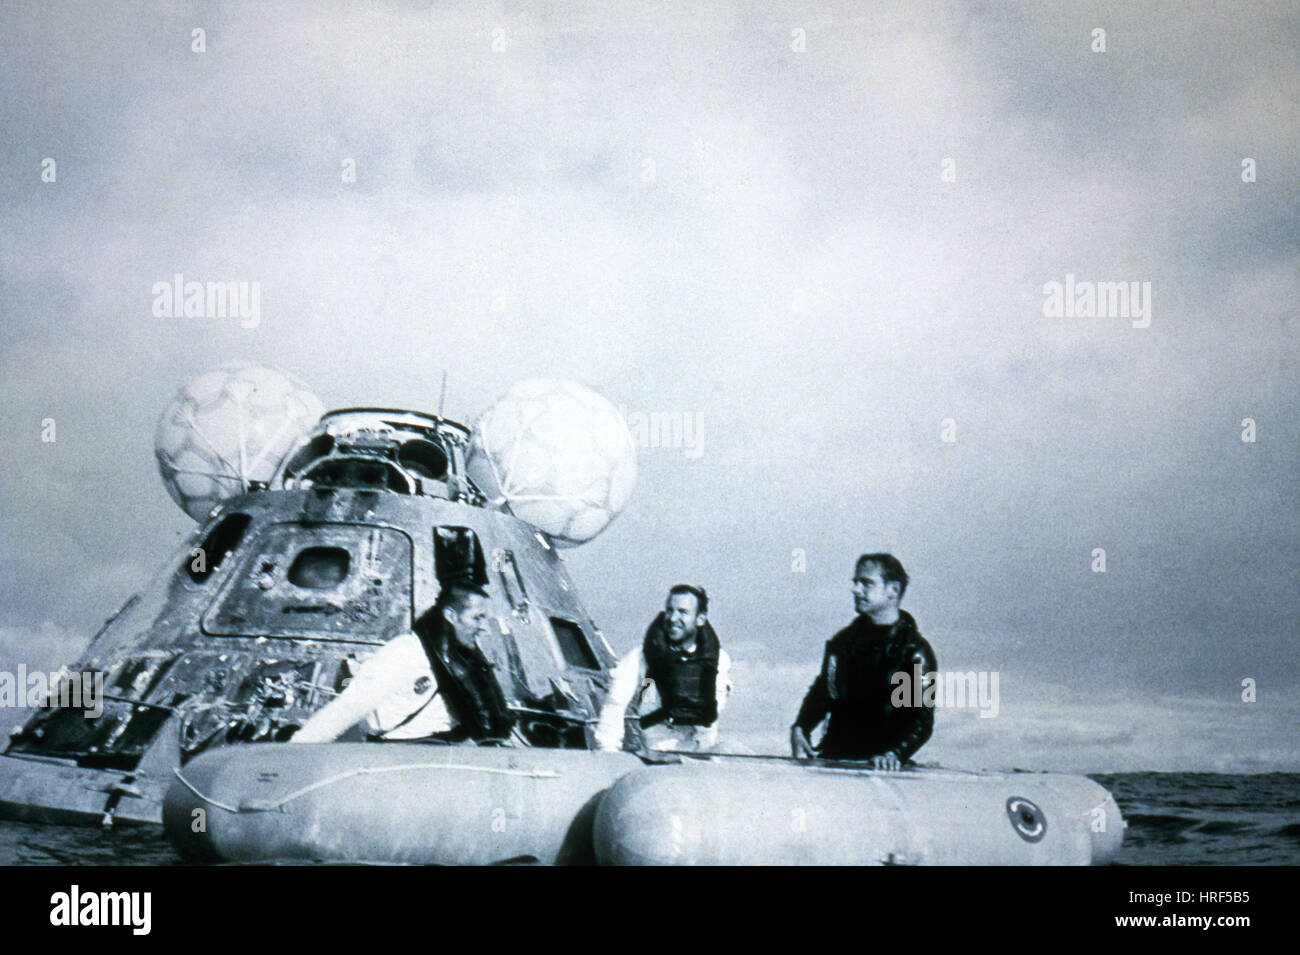 Apollo 13 Stock Photos and Images